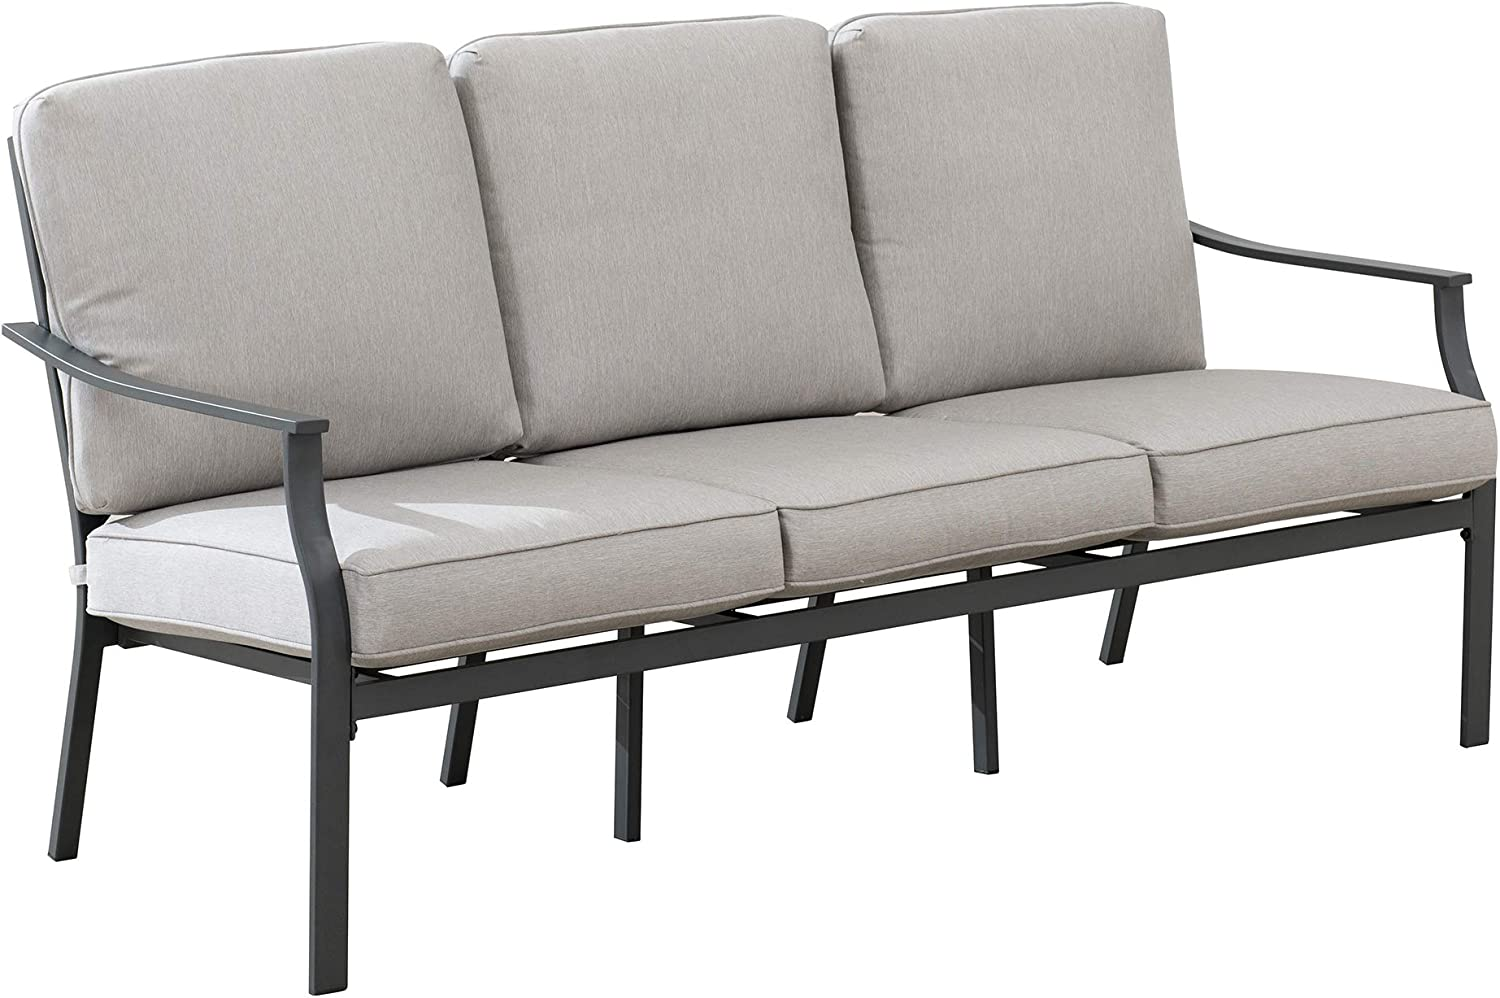 Amazon Brand - Ravenna Home Archer Steel-Framed Outdoor Patio Plush 3-Seater Sofa with Removable, Water-Resistant Cushions, 68.5